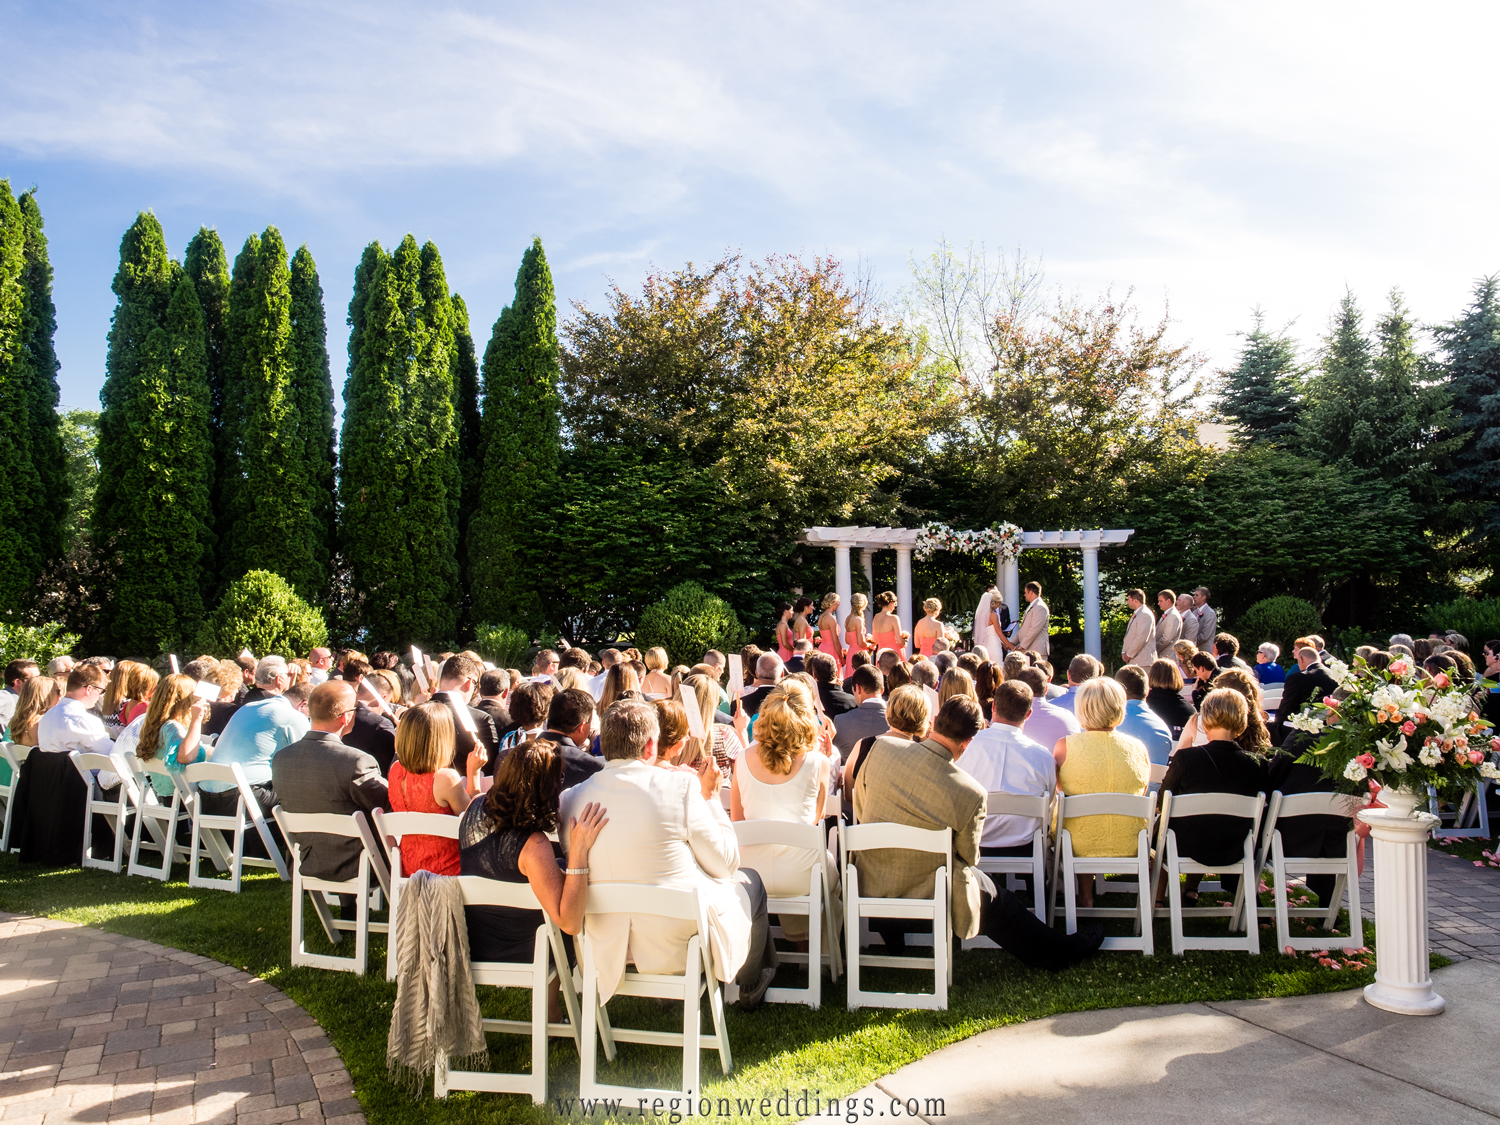 A beautiful outdoor wedding ceremony at Aberdeen Manor.